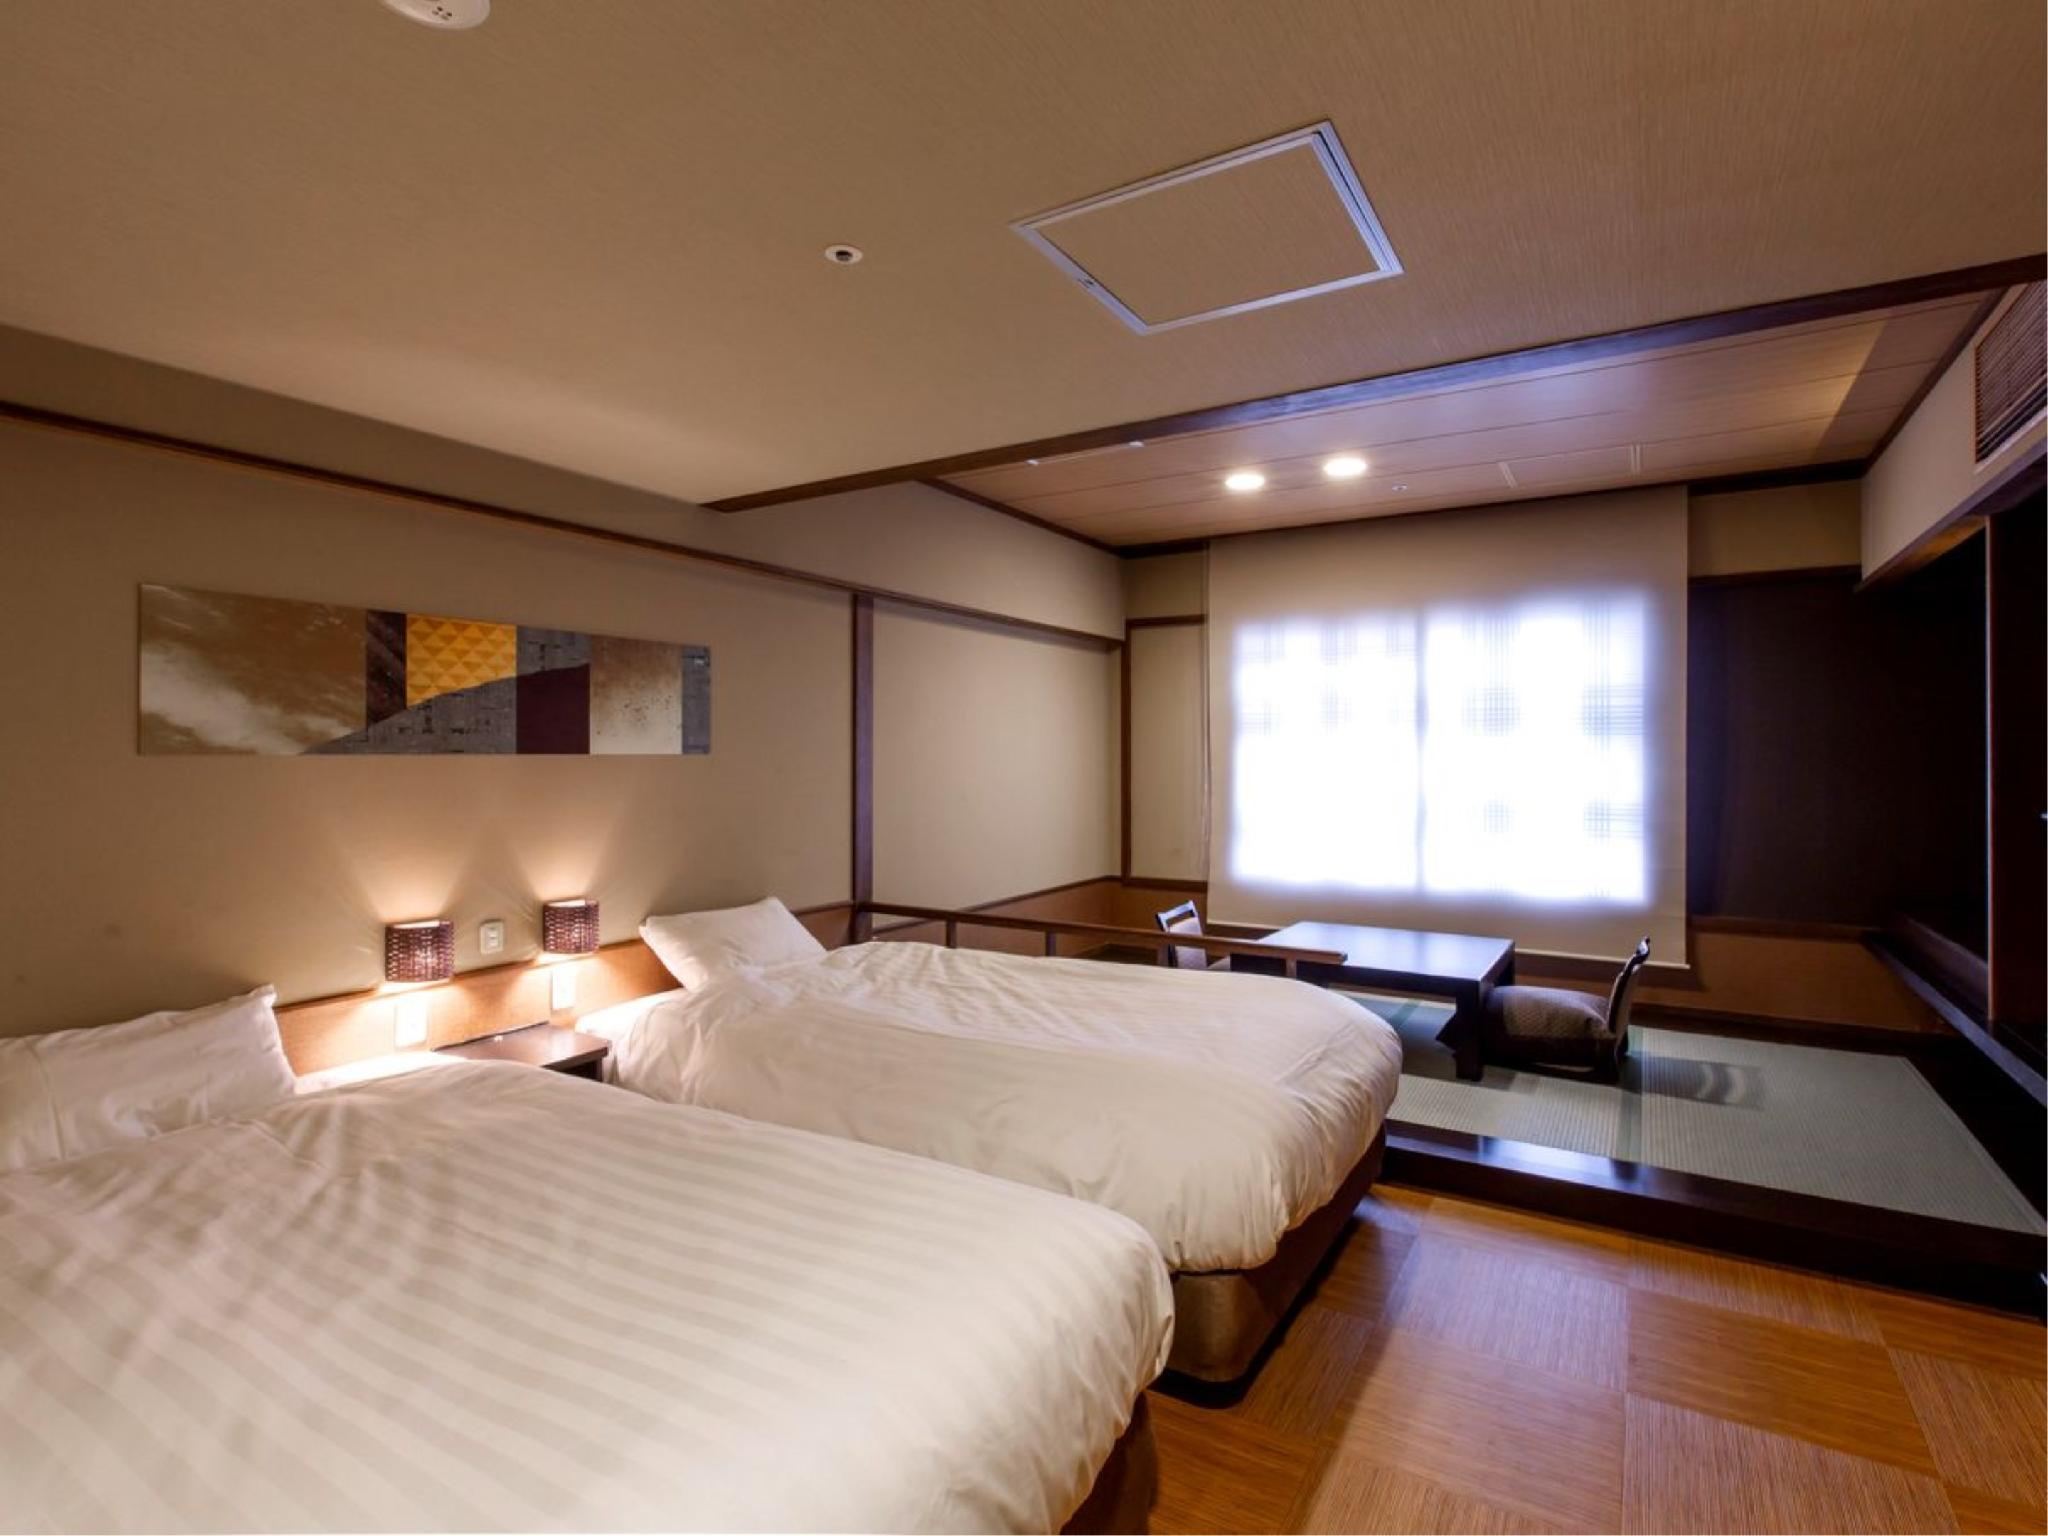 日式摩登和洋式房(2張床) (Modern Japanese/Western-style Room (Twin Beds))